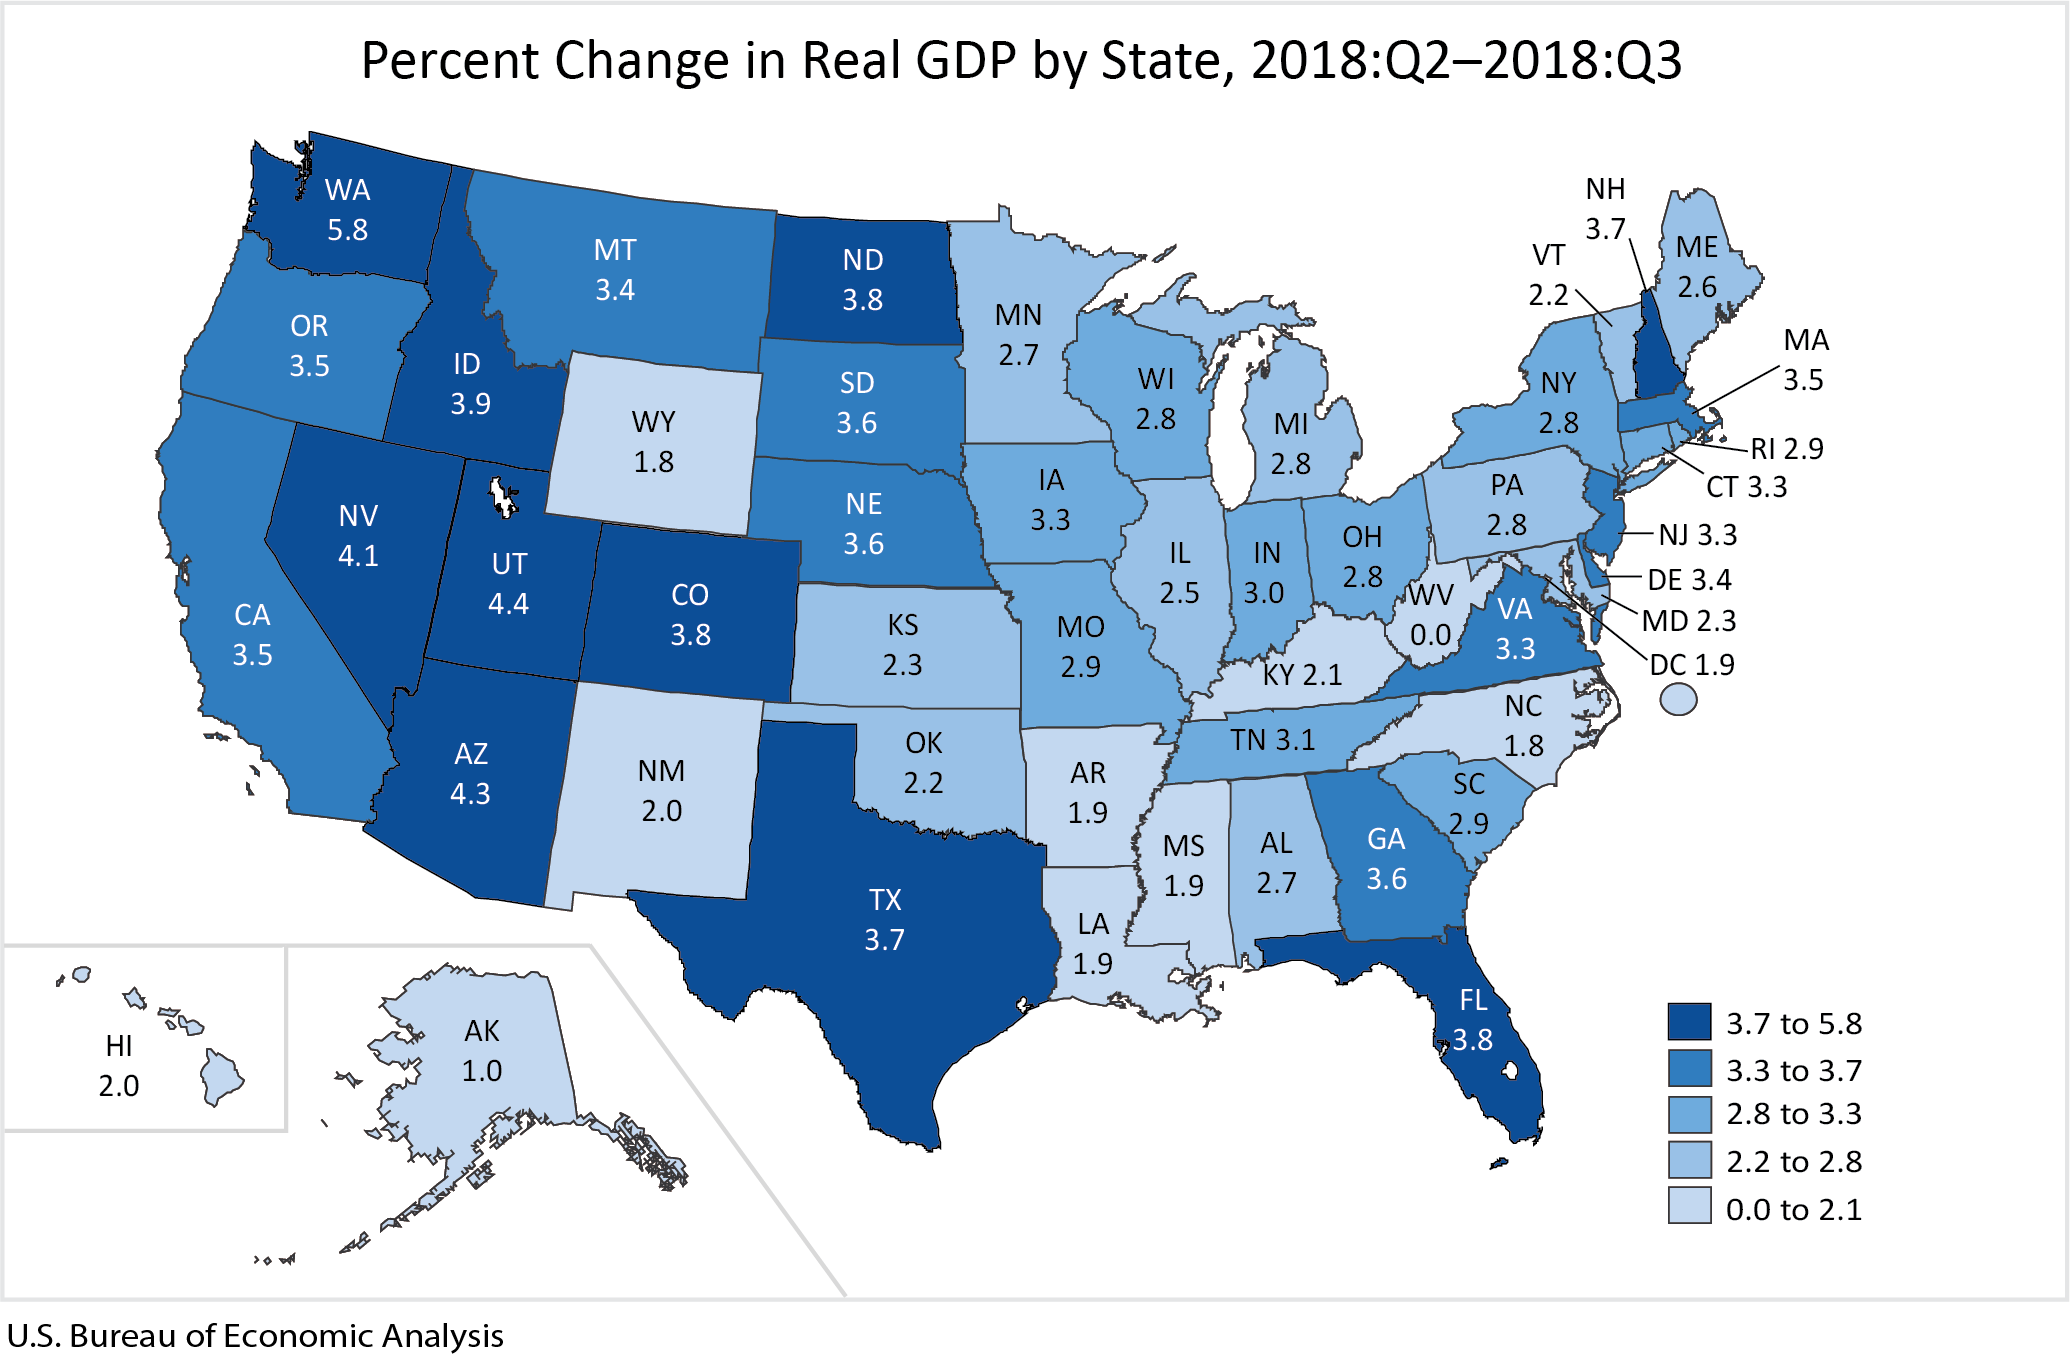 Percent Change in Real GDP by State, 2018:Q2-2018:Q3